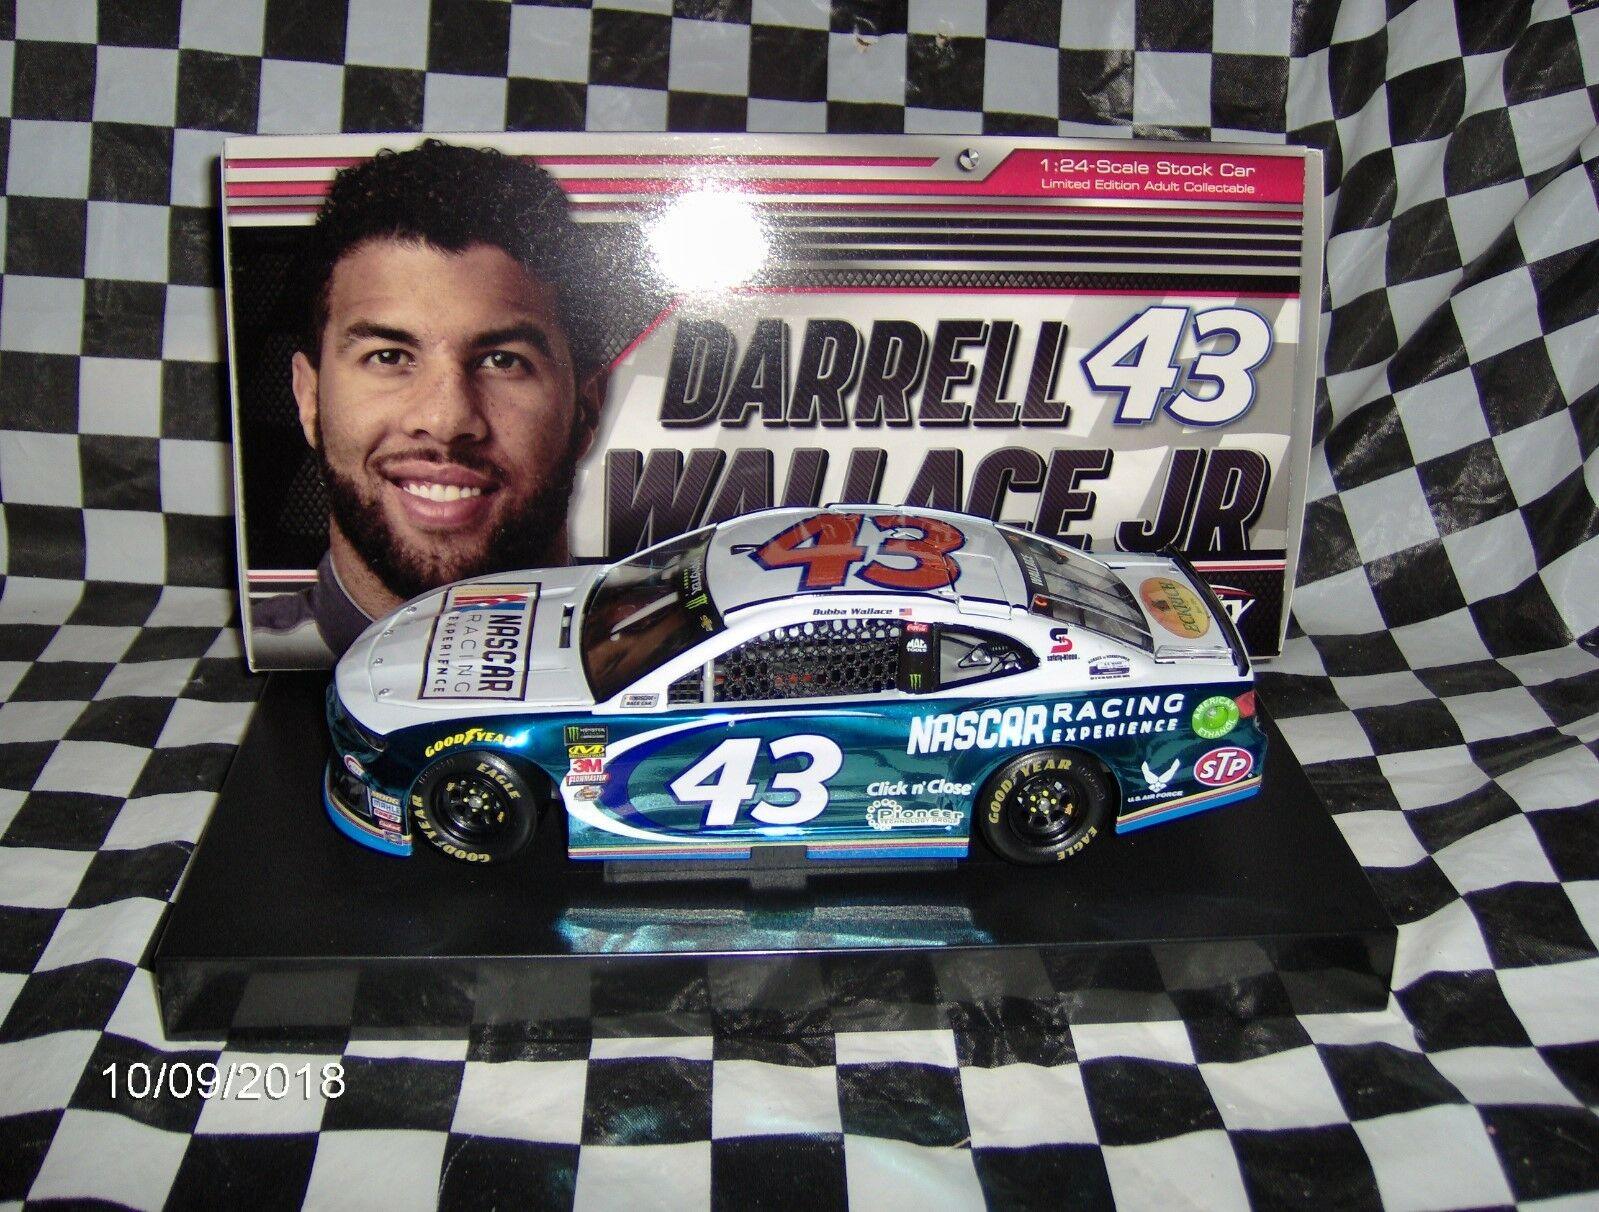 2018 Lionel Darrell (Bubba) Wallace JR  43 NASCAR RACING EXPERIENCE Couleur Chrome